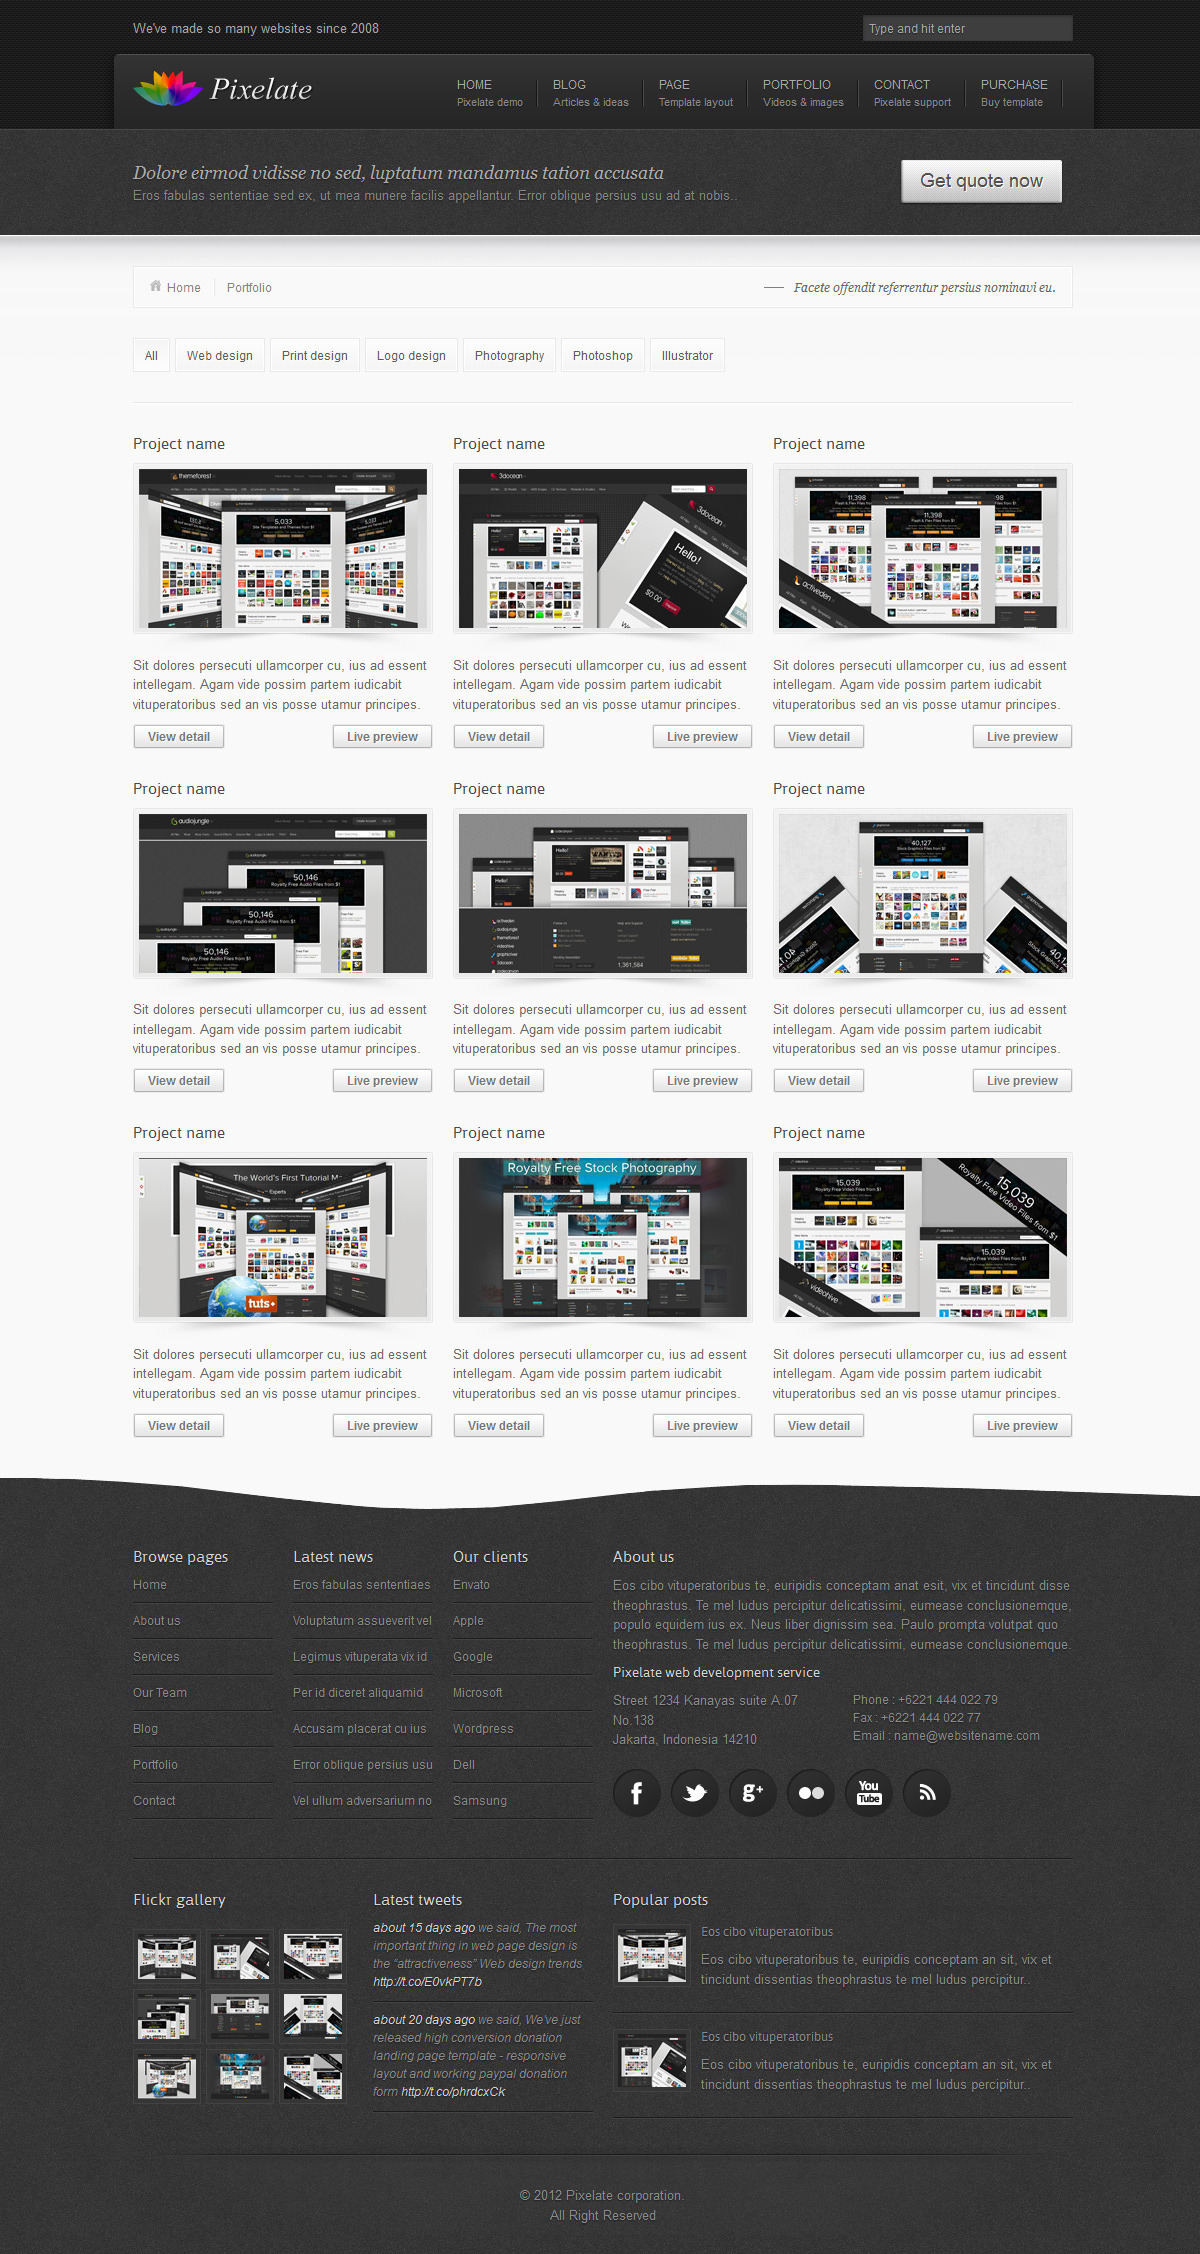 Pixelate corporate website template